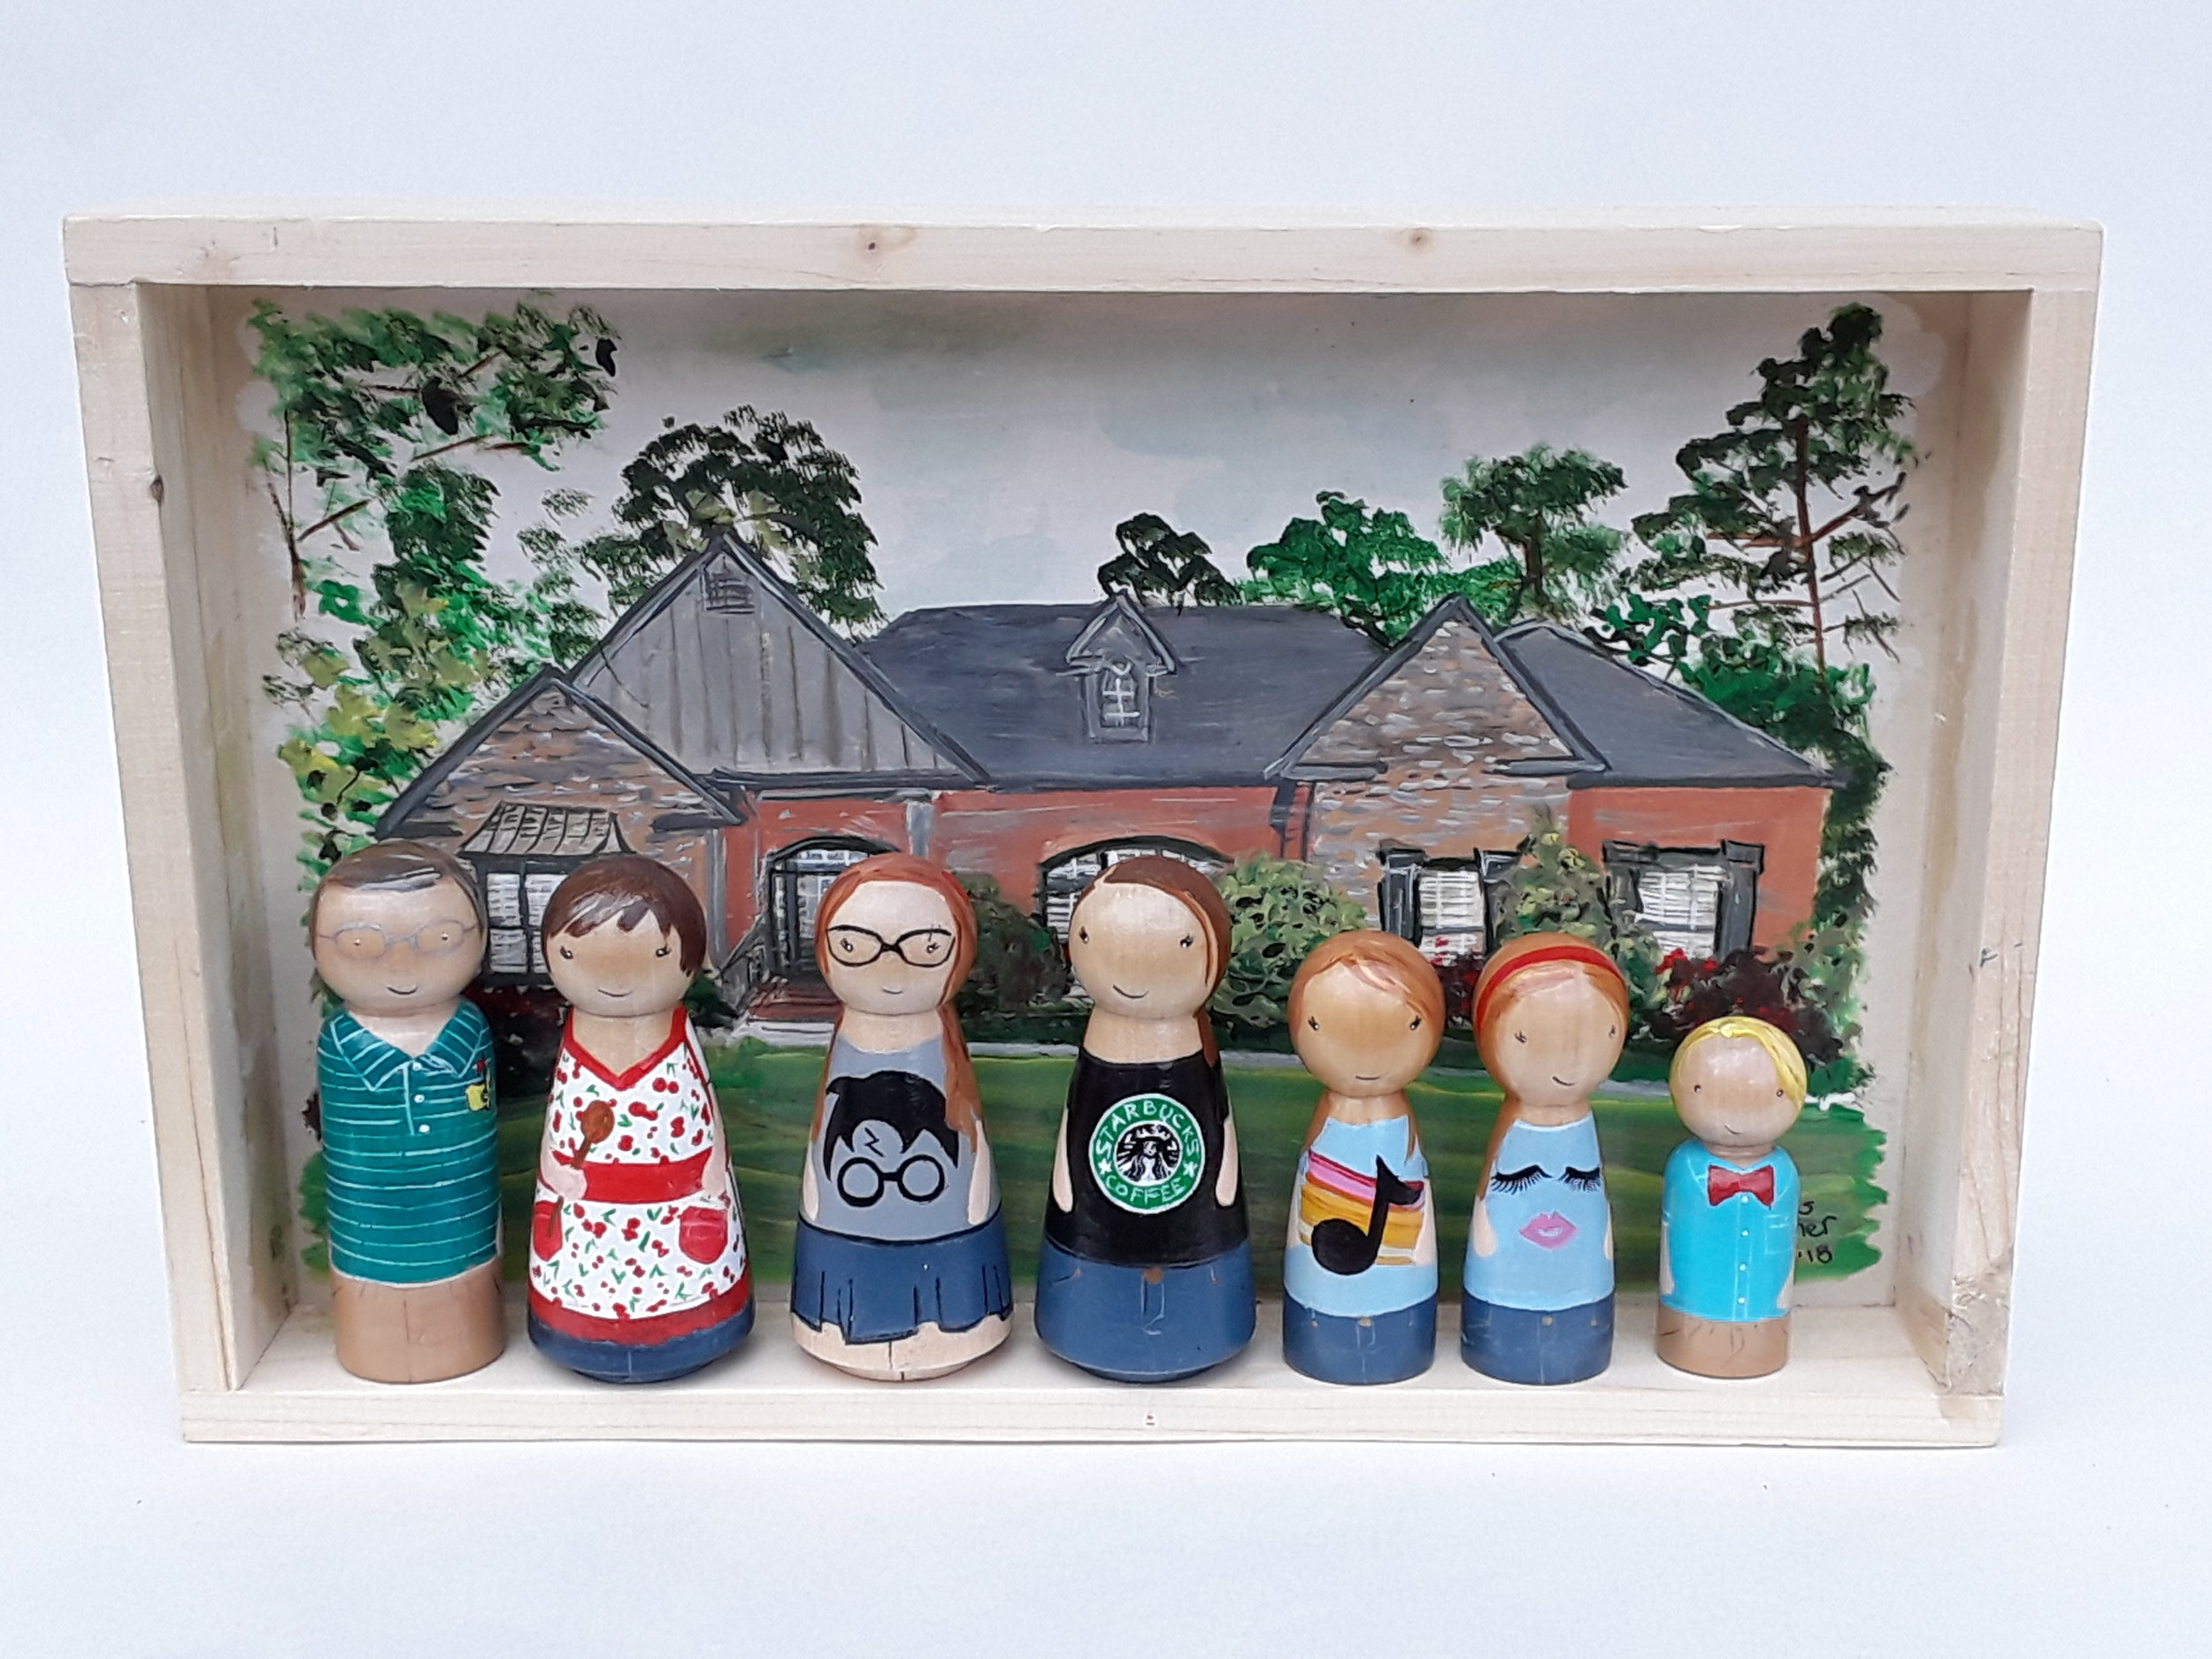 Grandparents and their grandchildren - This Shadow Box was created as a special gift for the Grandparents. A recreation of all their grandchildren standing in front of their treasured home. Each peg doll is wearing an outfit or details that are meaningful to them, from Grandpa's Golf shirt to grandma's wooden spoon.Box size 8x12 with 7 peg dolls.Starts at $180